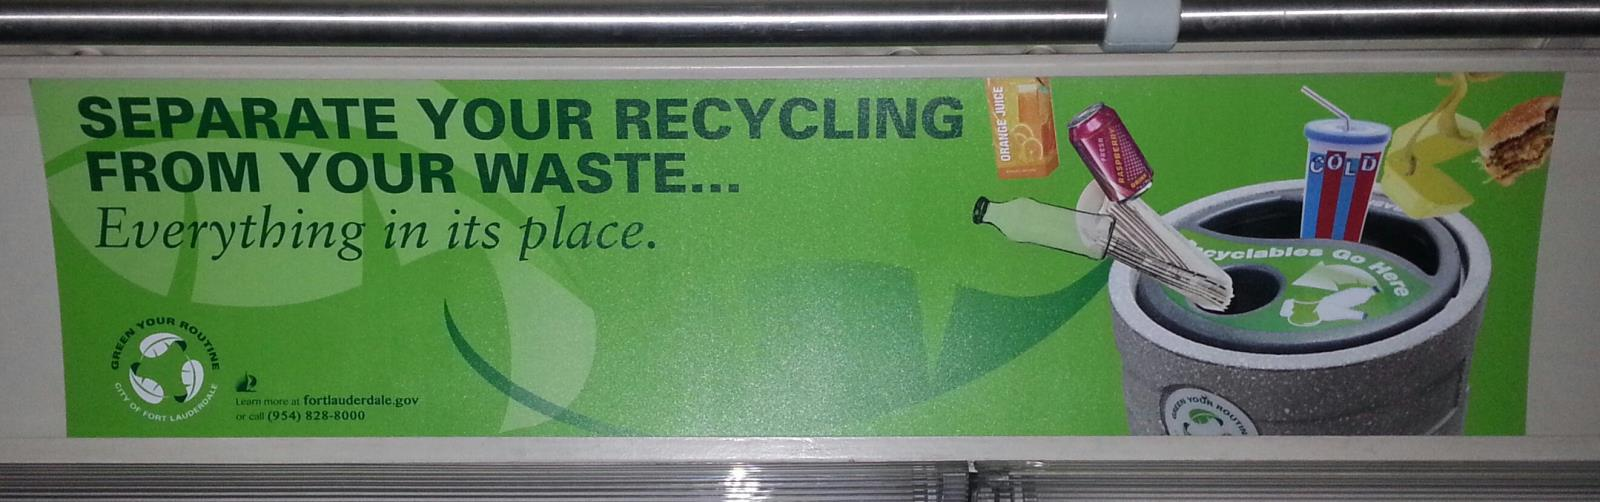 Educating Bus Passengers about Recycling